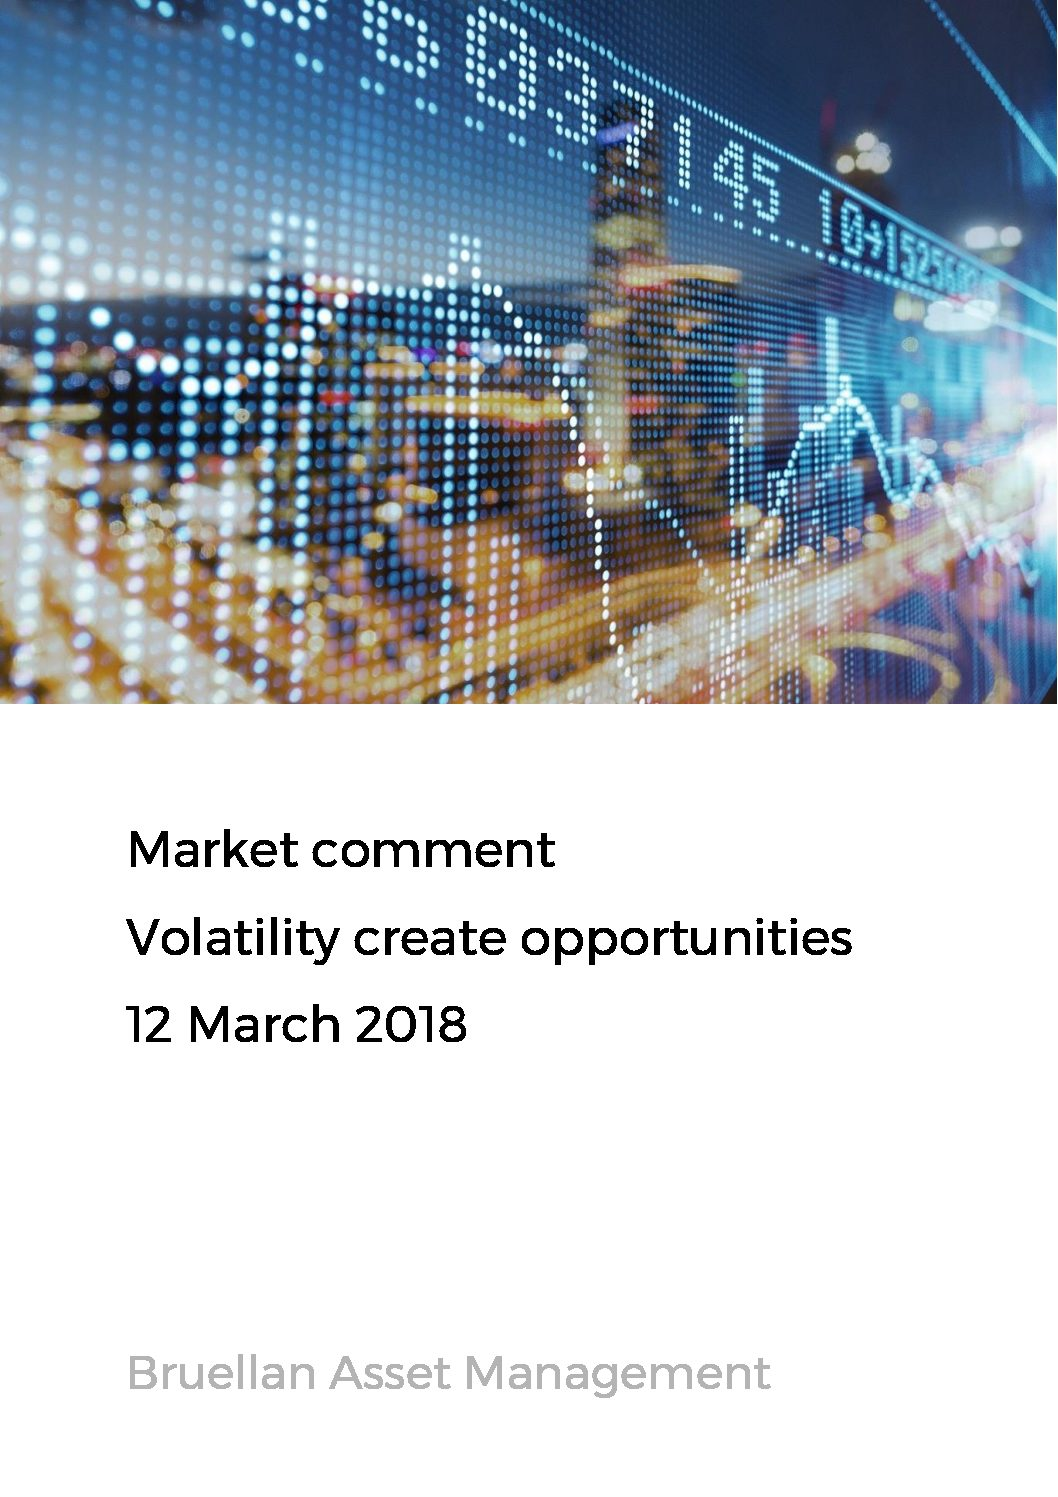 Market Comment - Volatility create opportunities